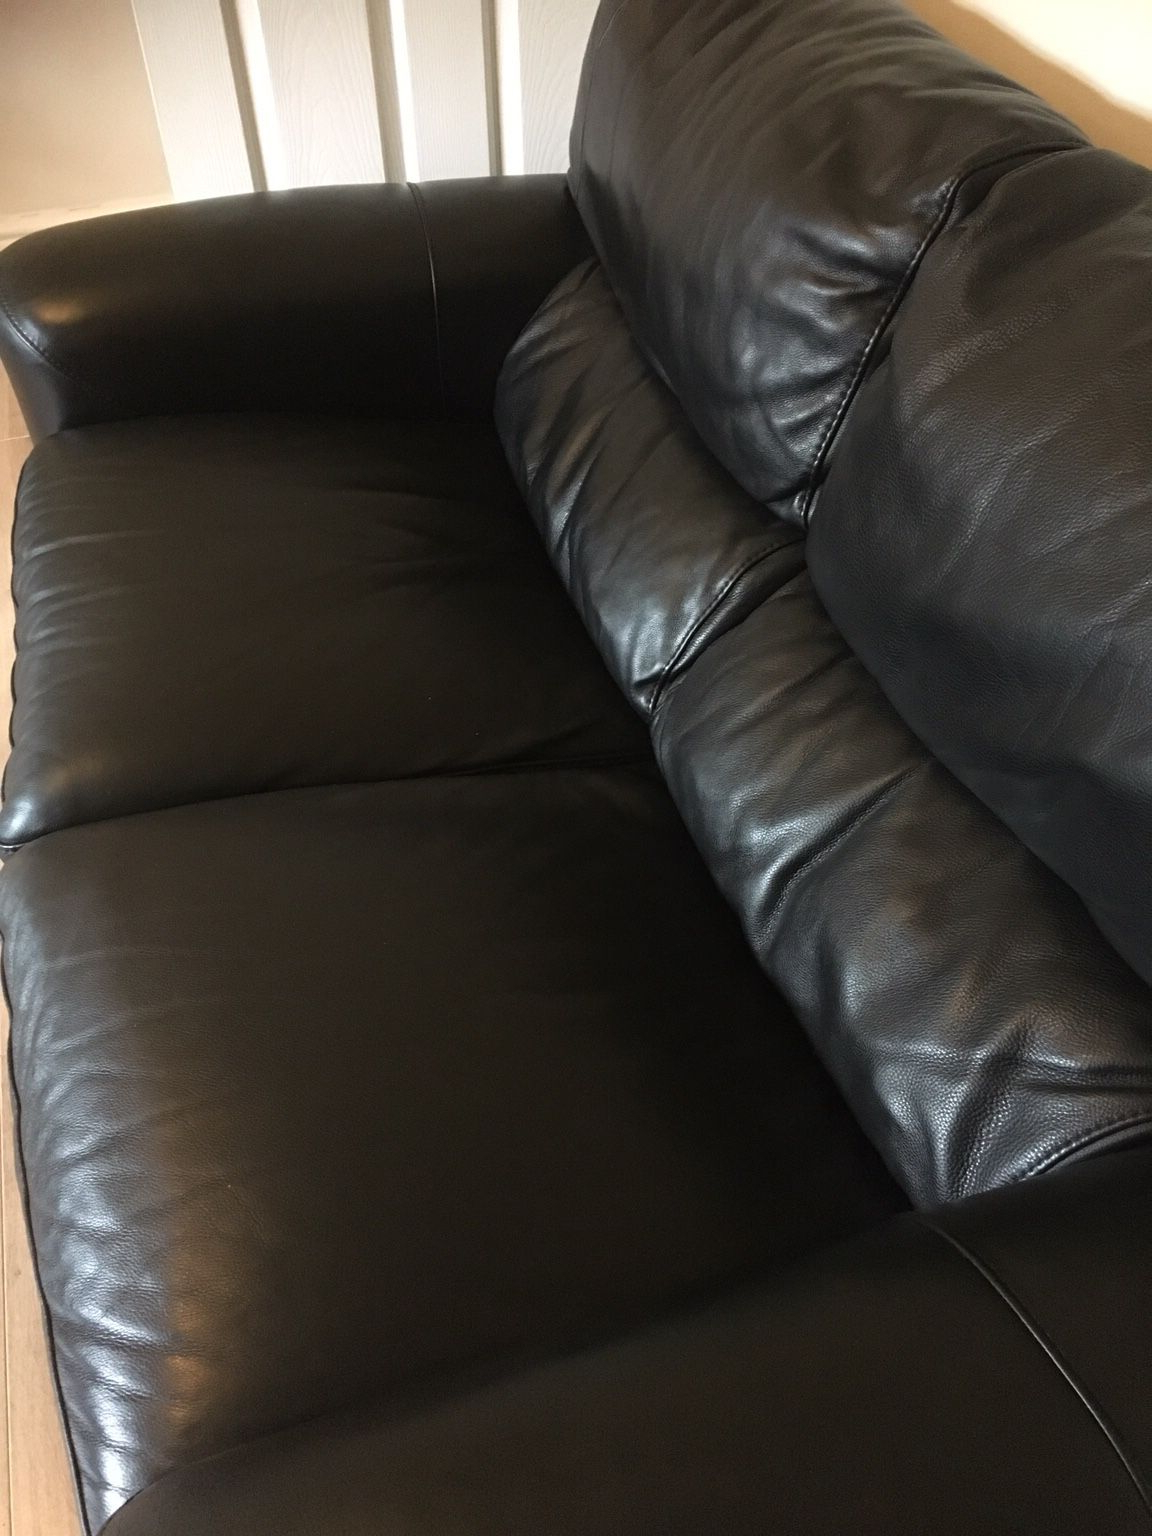 Https://en.shpock/i/w8Uitd3Ptwsme 6B/ 2018 12 17T20:34:49+ Pertaining To Famous Moana Taupe Leather Power Reclining Sofa Chairs With Usb (Gallery 8 of 20)